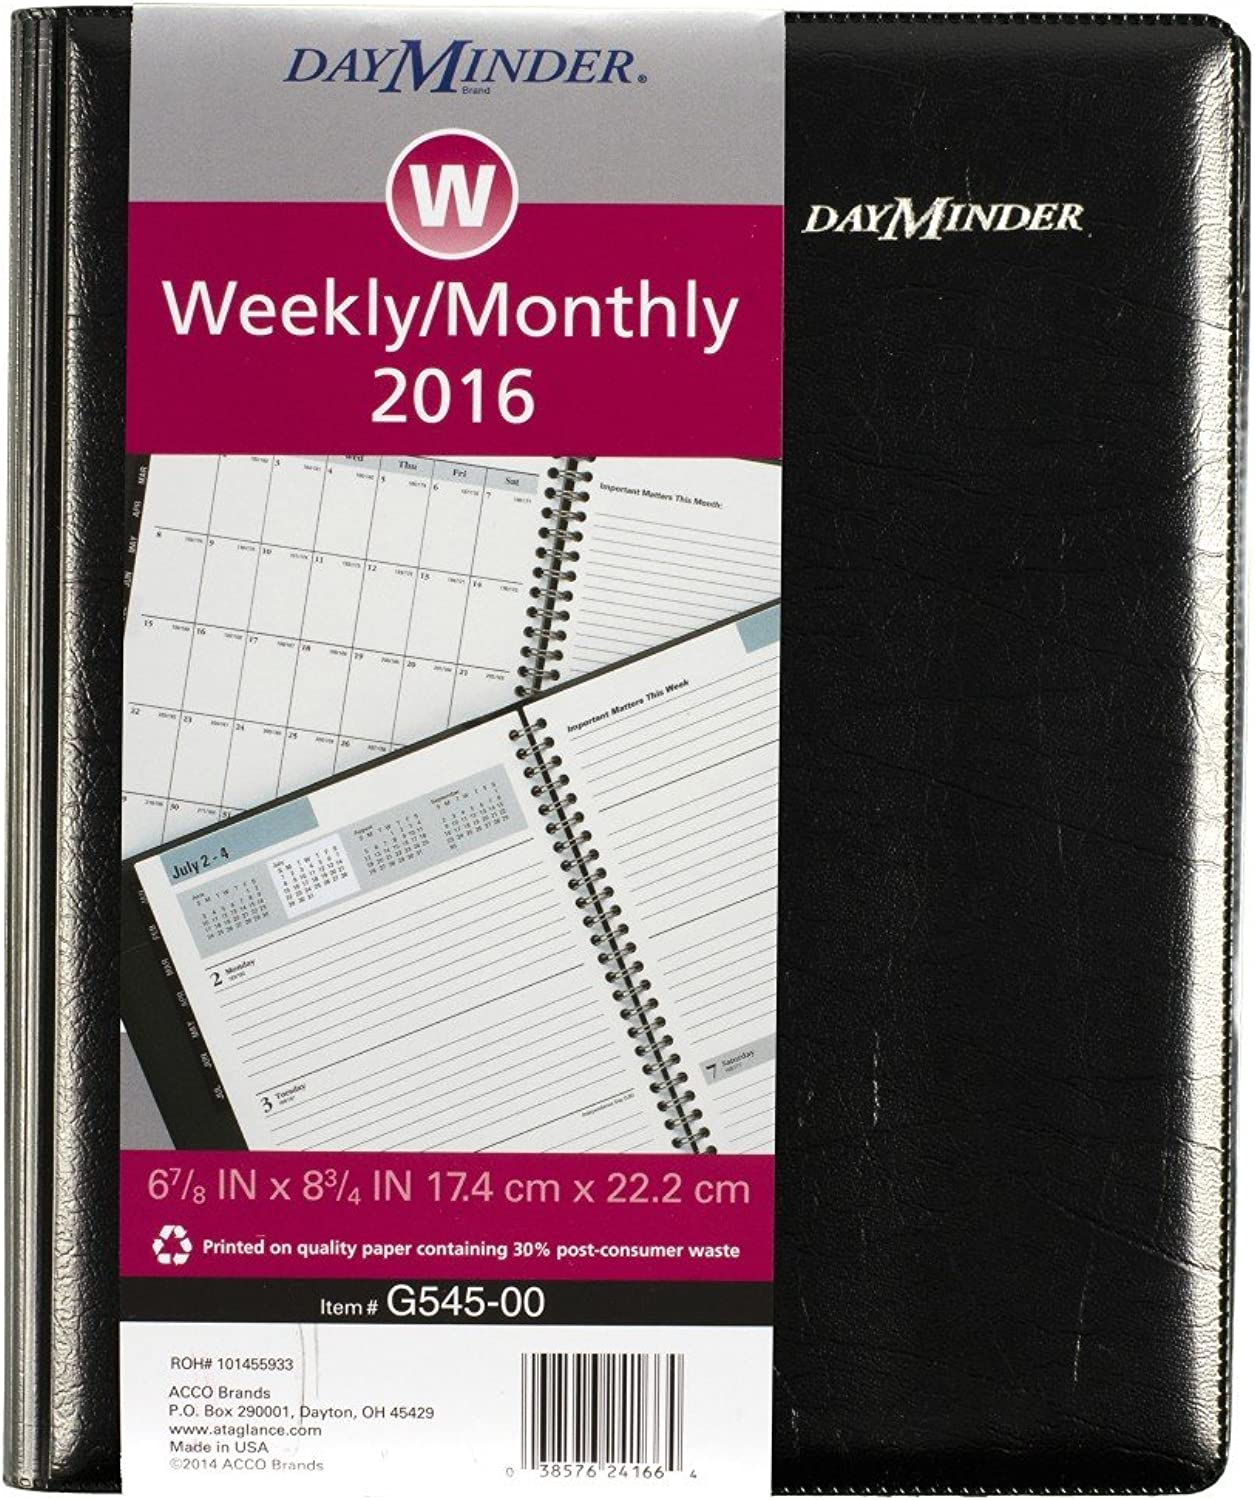 DayMinder DayMinder DayMinder Executive Planner 2016, Weekly Monthly Planning, 6.88 x 8.75 Inches Page Größe, schwarz (G5450016) by DayMinder B00WUUJEMI | Outlet